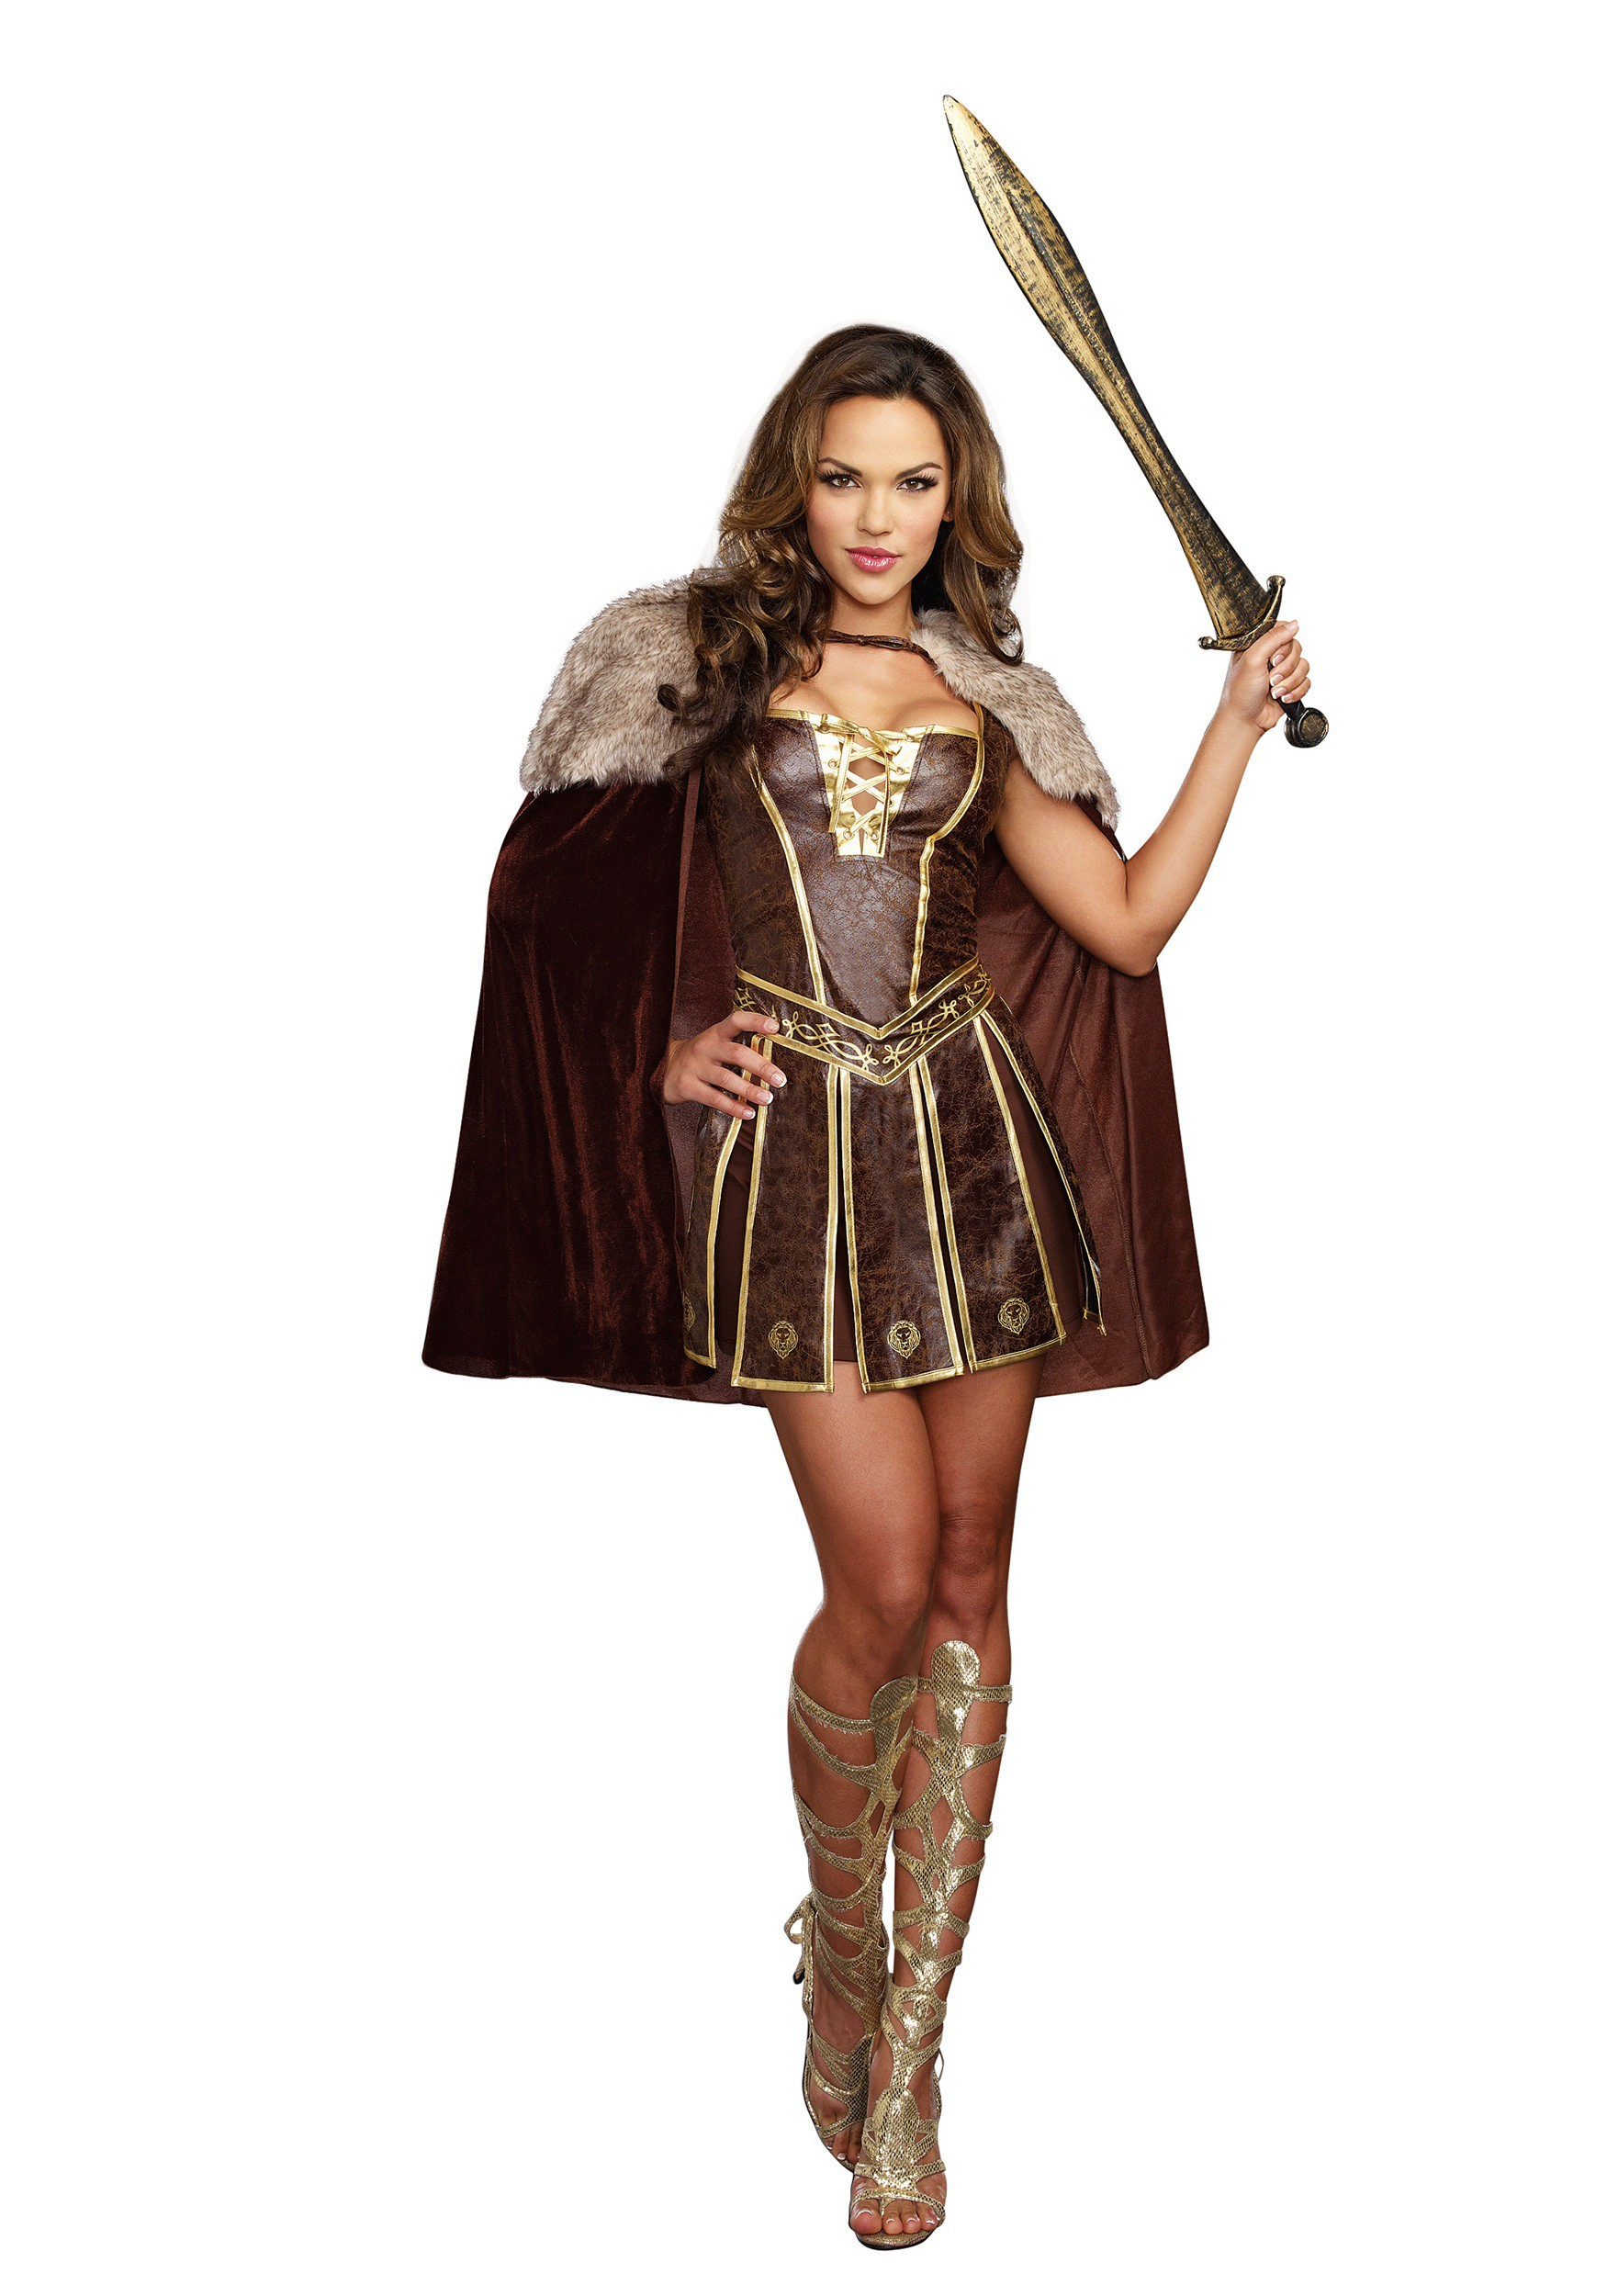 392856c1658 Women s Victorious Beauty Gladiator Costume